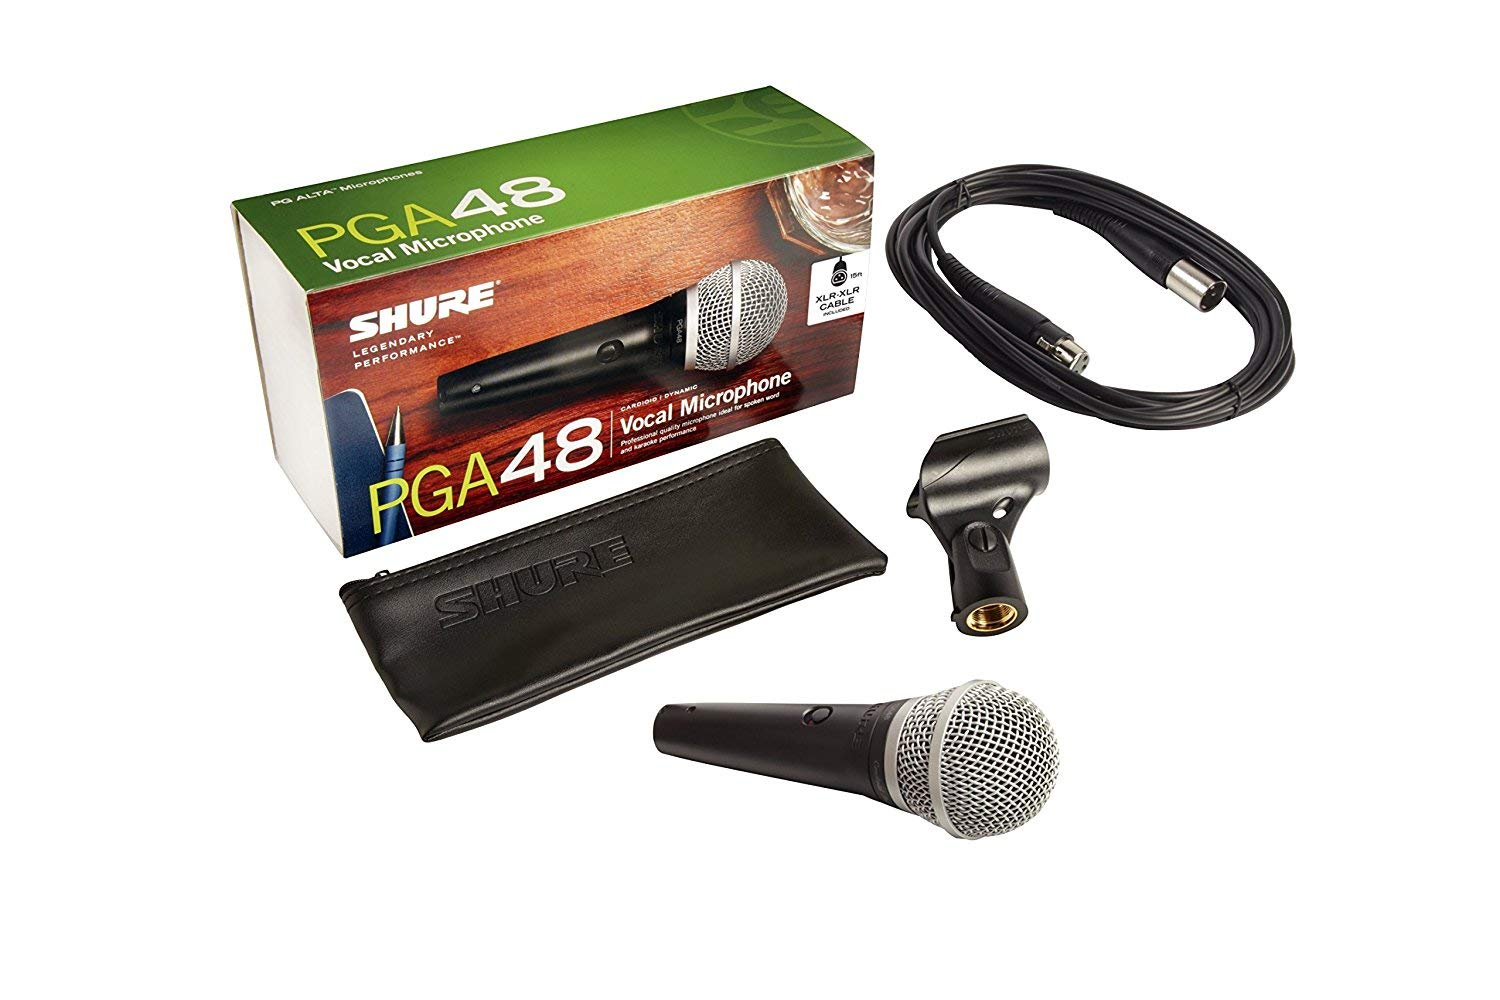 Bose S1 Pro Bluetooth Speaker System Bundle with Battery, Shure PGA48 Microphone, 15ft XLR Audio Cable (6 items) 3 Bundle Includes: Bose S1 Pro Bluetooth Speaker System Bundle with Battery, Shure PGA48 Microphone, 15ft XLR Audio Cable (6 items) Wireless Bluetooth pairing and inputs for a microphone or musical instrument such as a keyboard or guitar Built-in sensors and multiple aiming positions for optimal sound in any nearly position